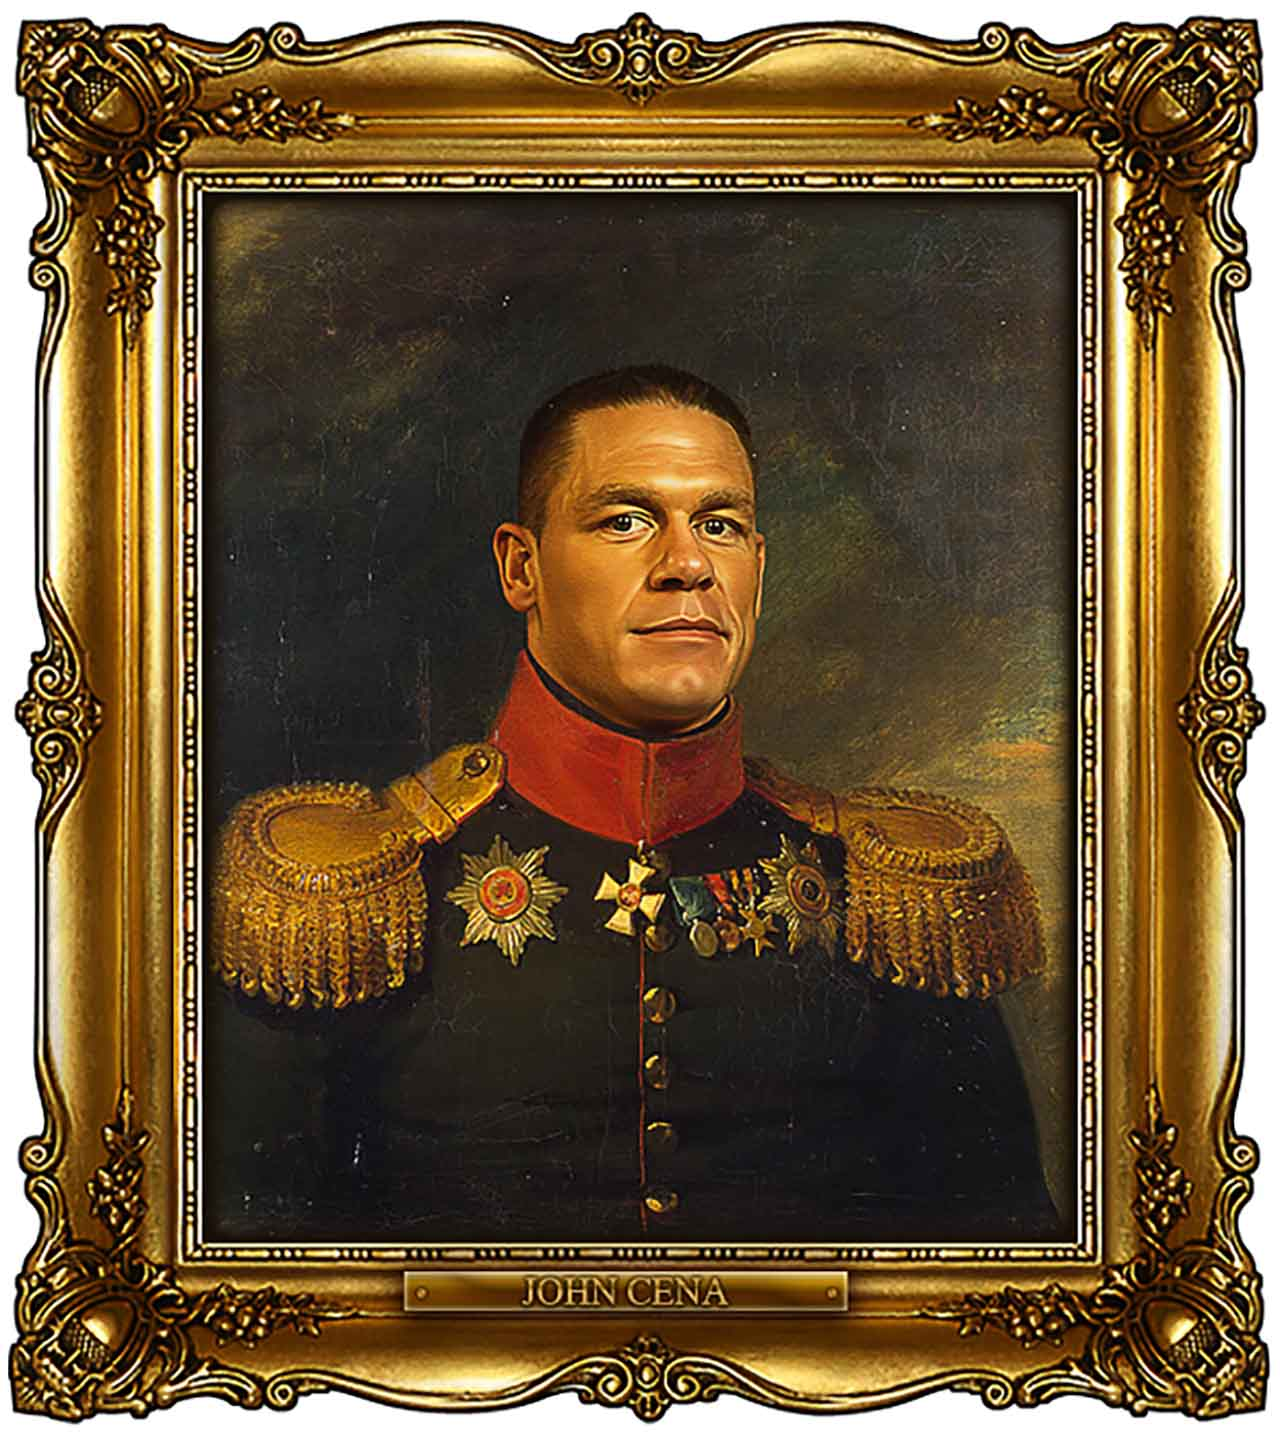 Artist Turns Famous Actors Into Russian Generals - John Cena